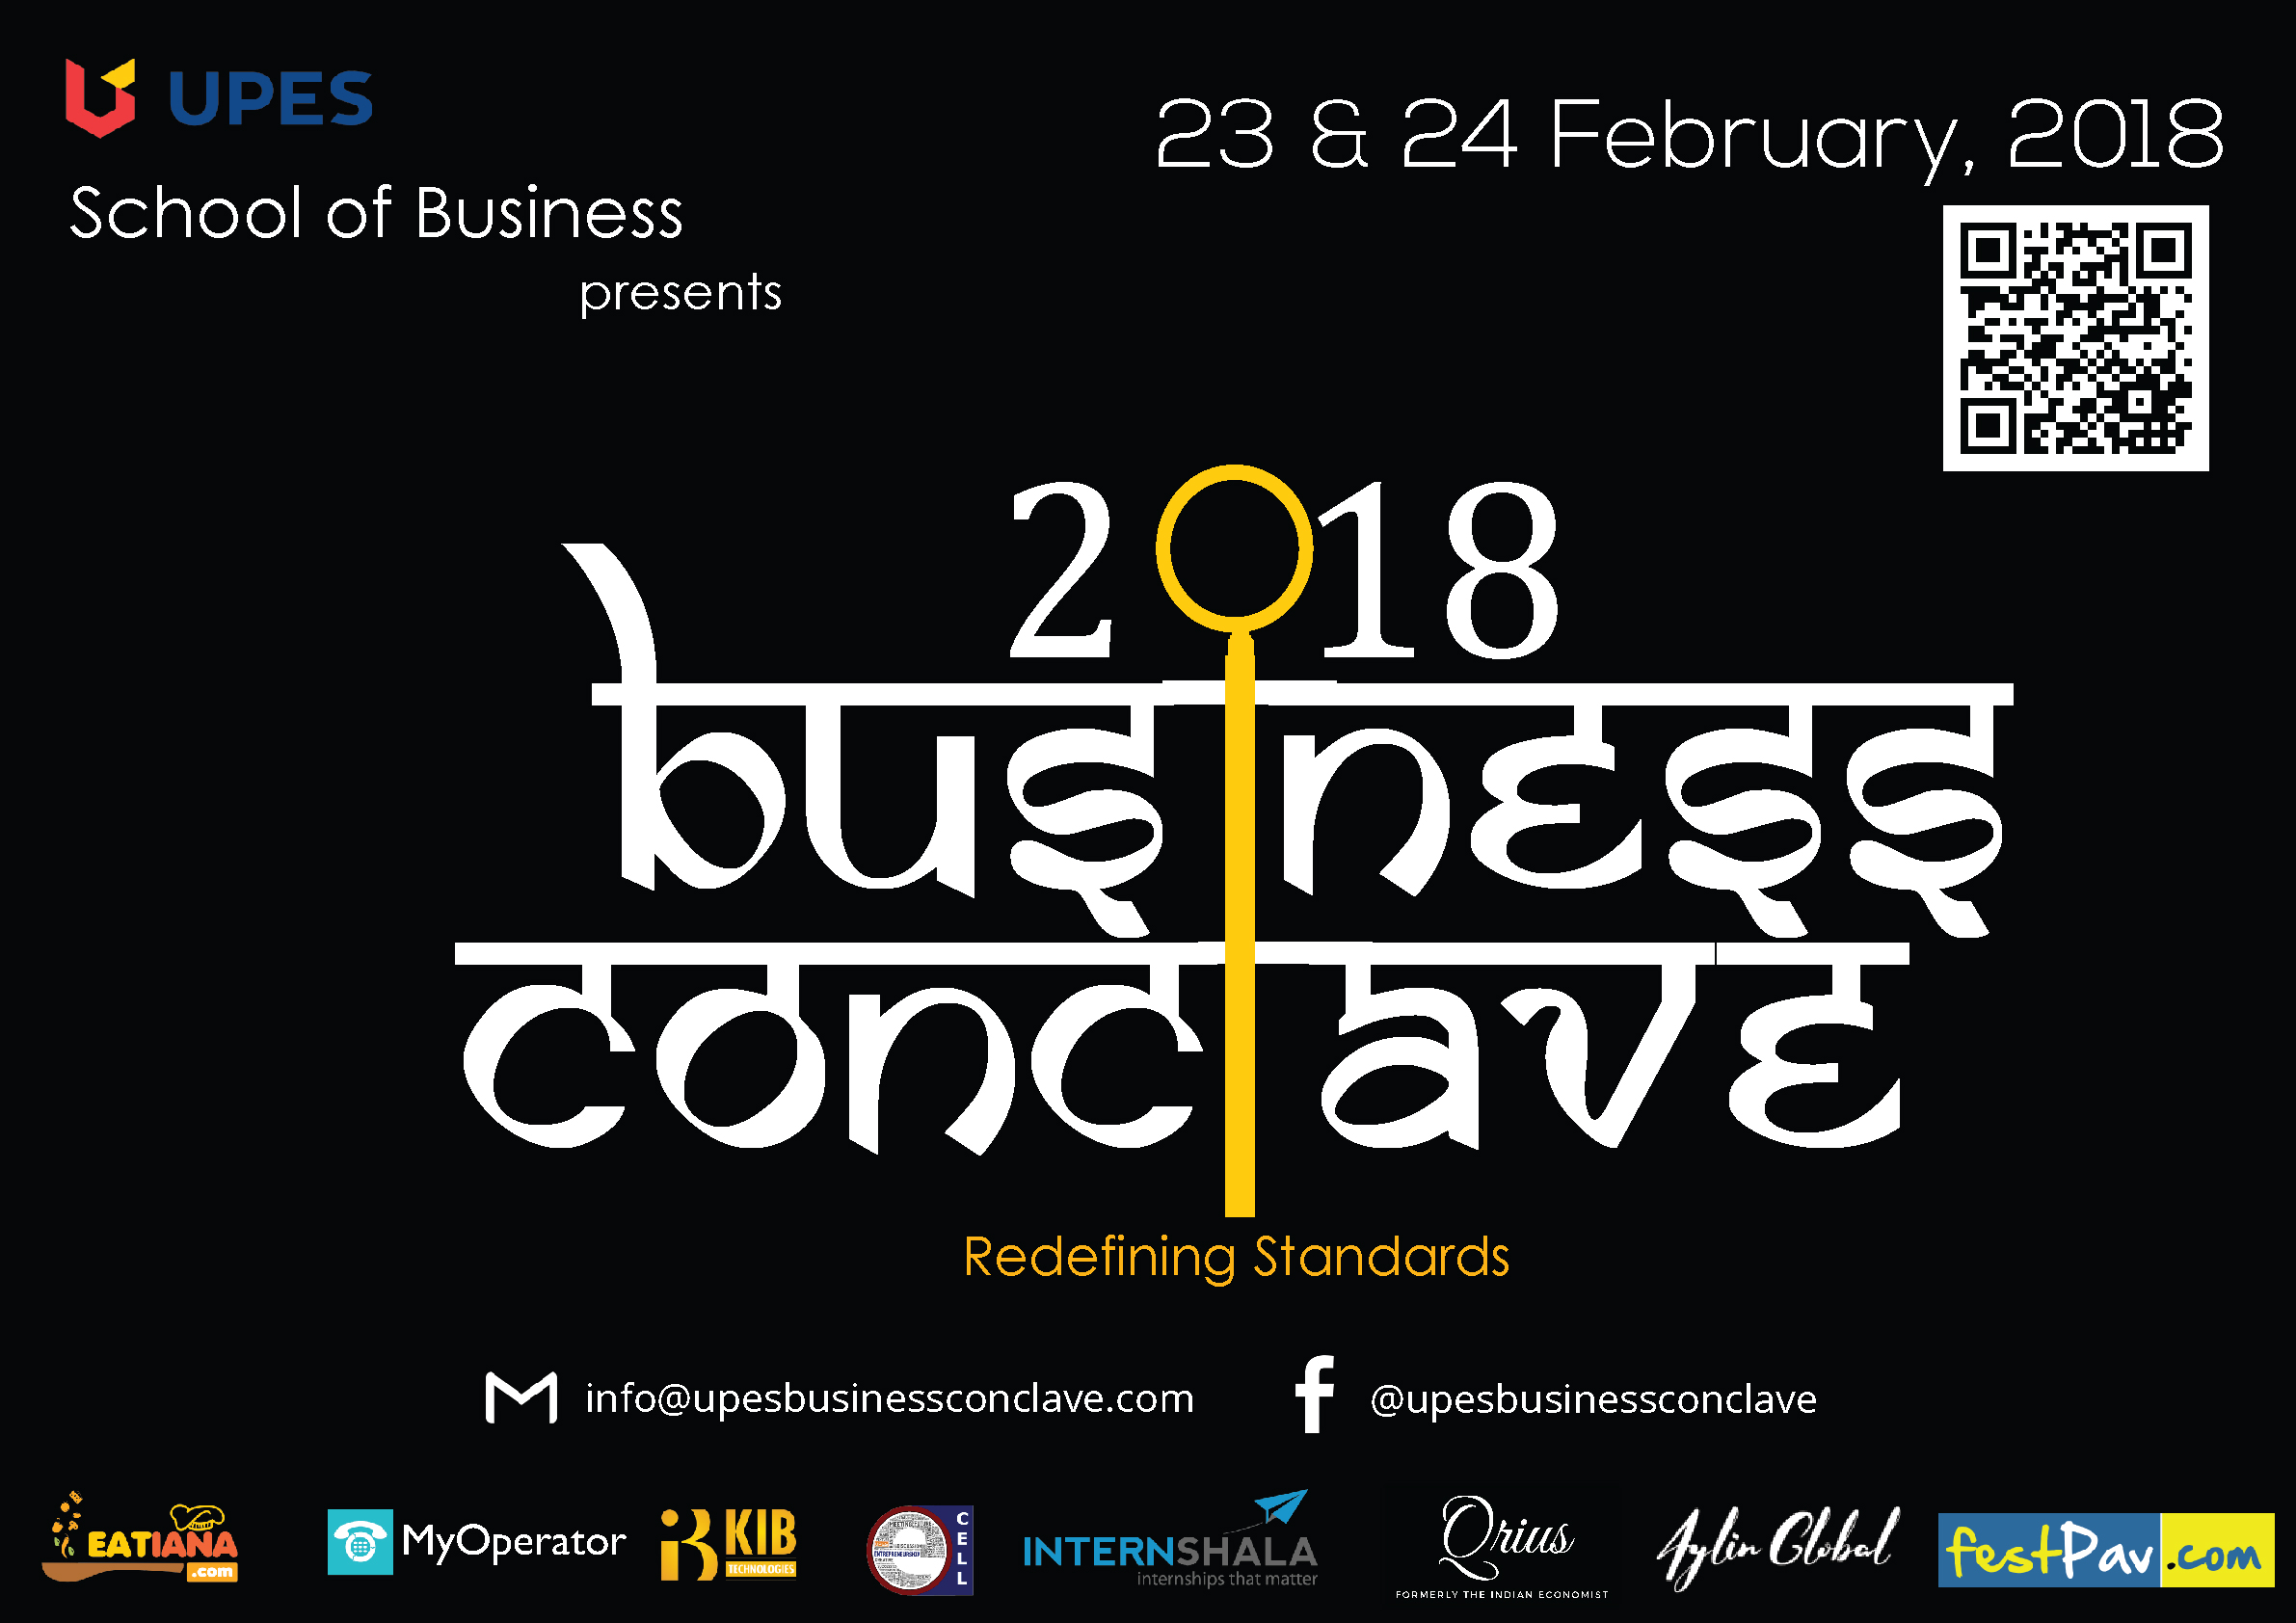 UPES Business Conclave